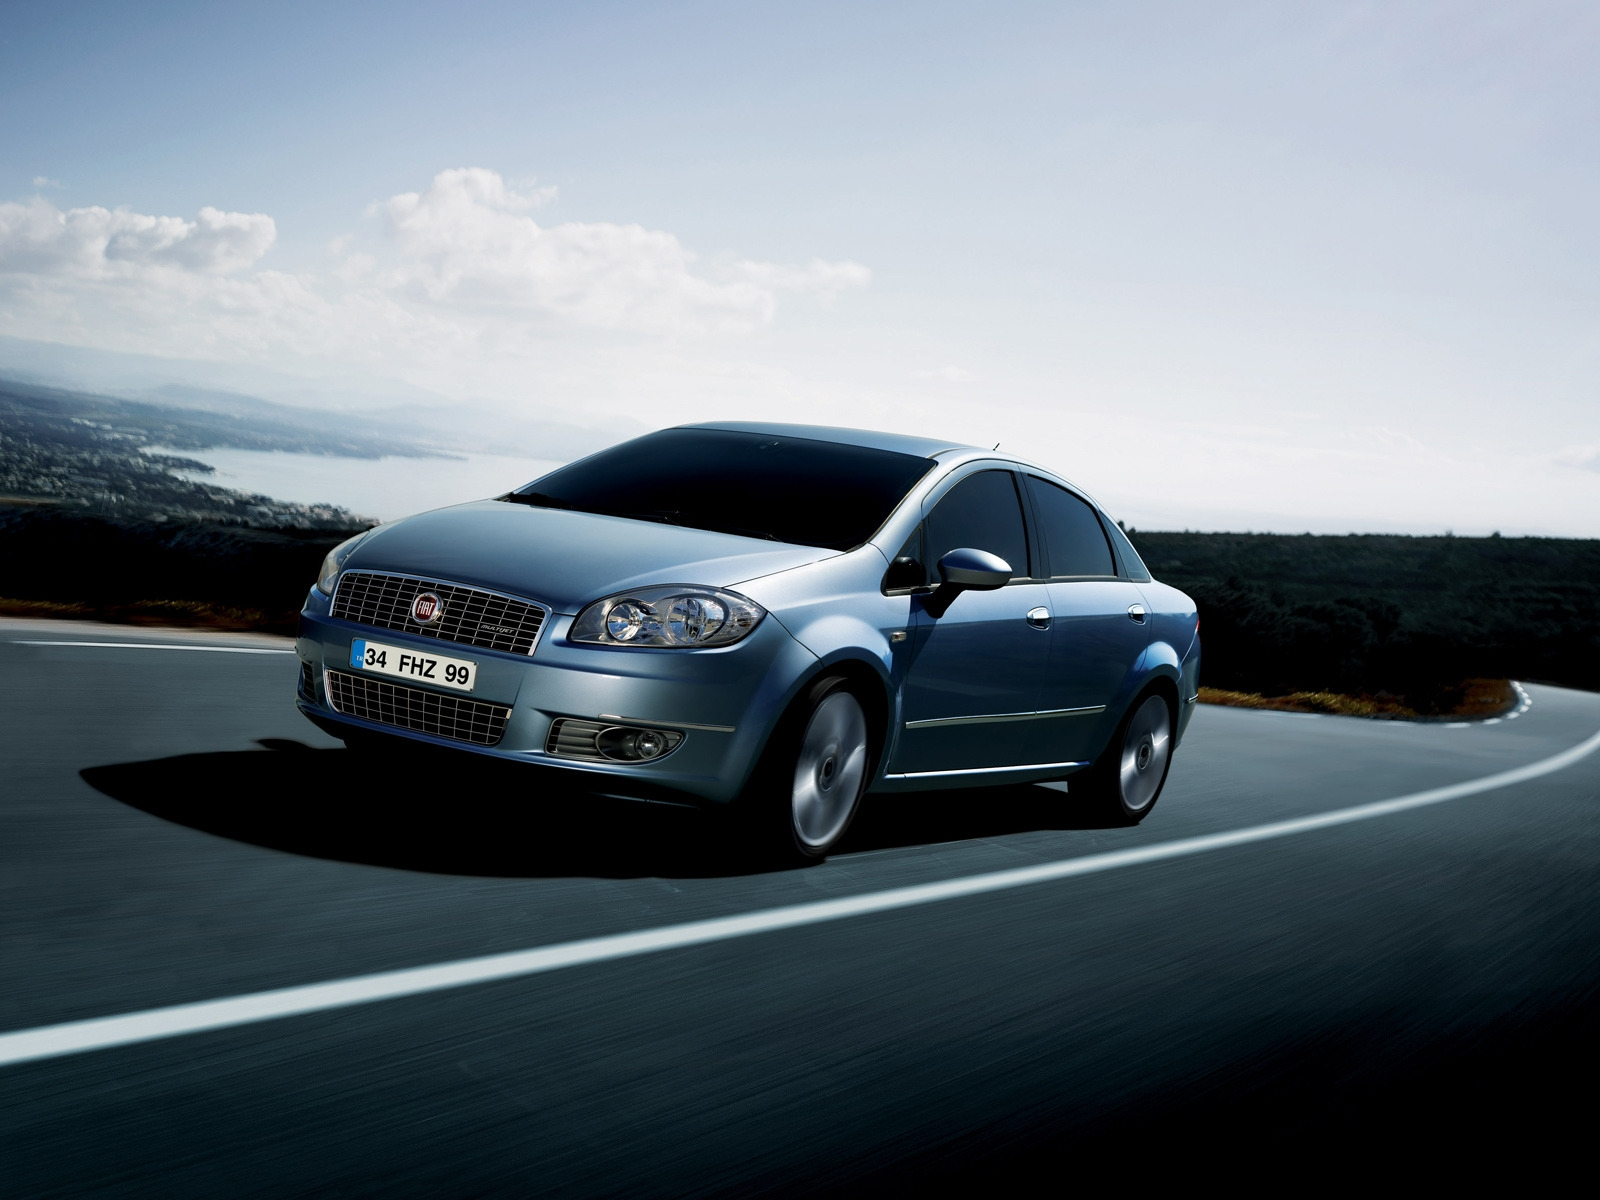 Fiat Linea 2009 Speed for 1600 x 1200 resolution